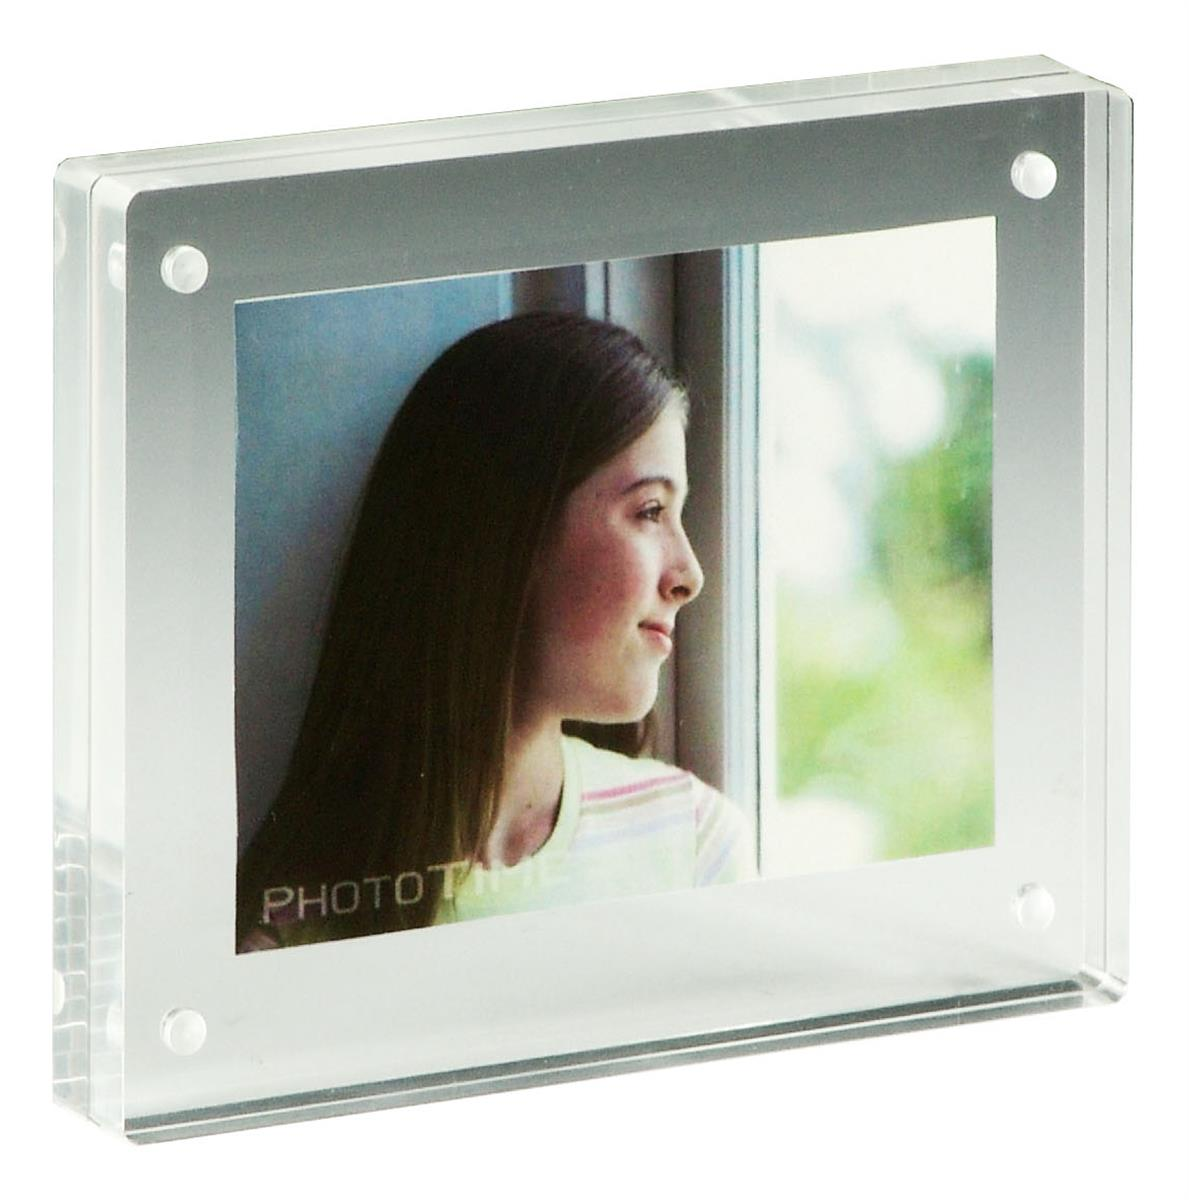 Counter photograph frame clear acrylic tabletop display for 11x14 table top frame